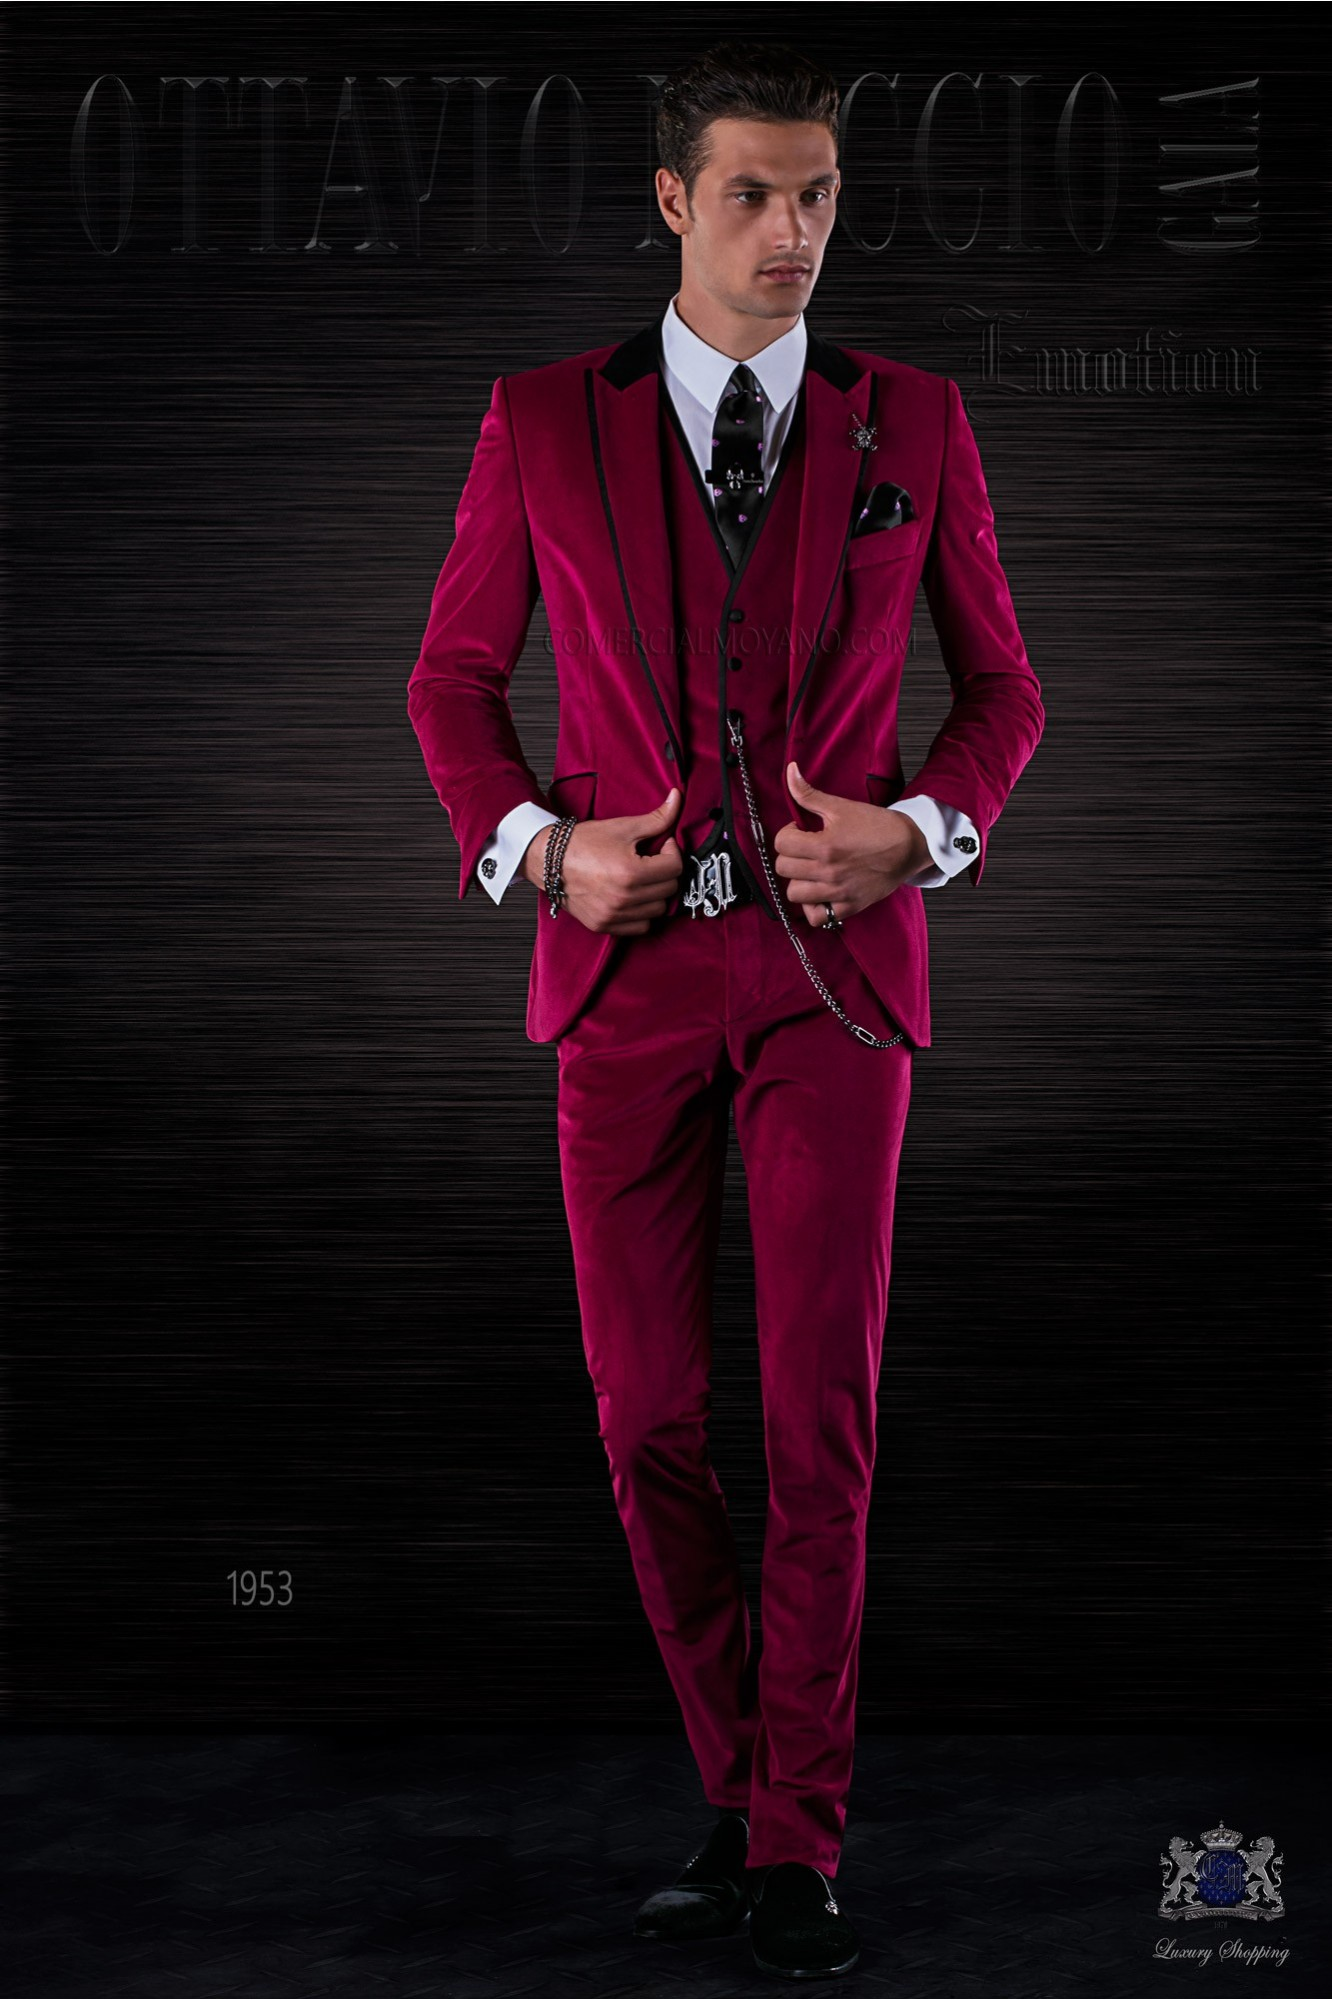 Bespoke Italian fashion fuchsia velvet suit with black satin details model 1953 Ottavio Nuccio Gala